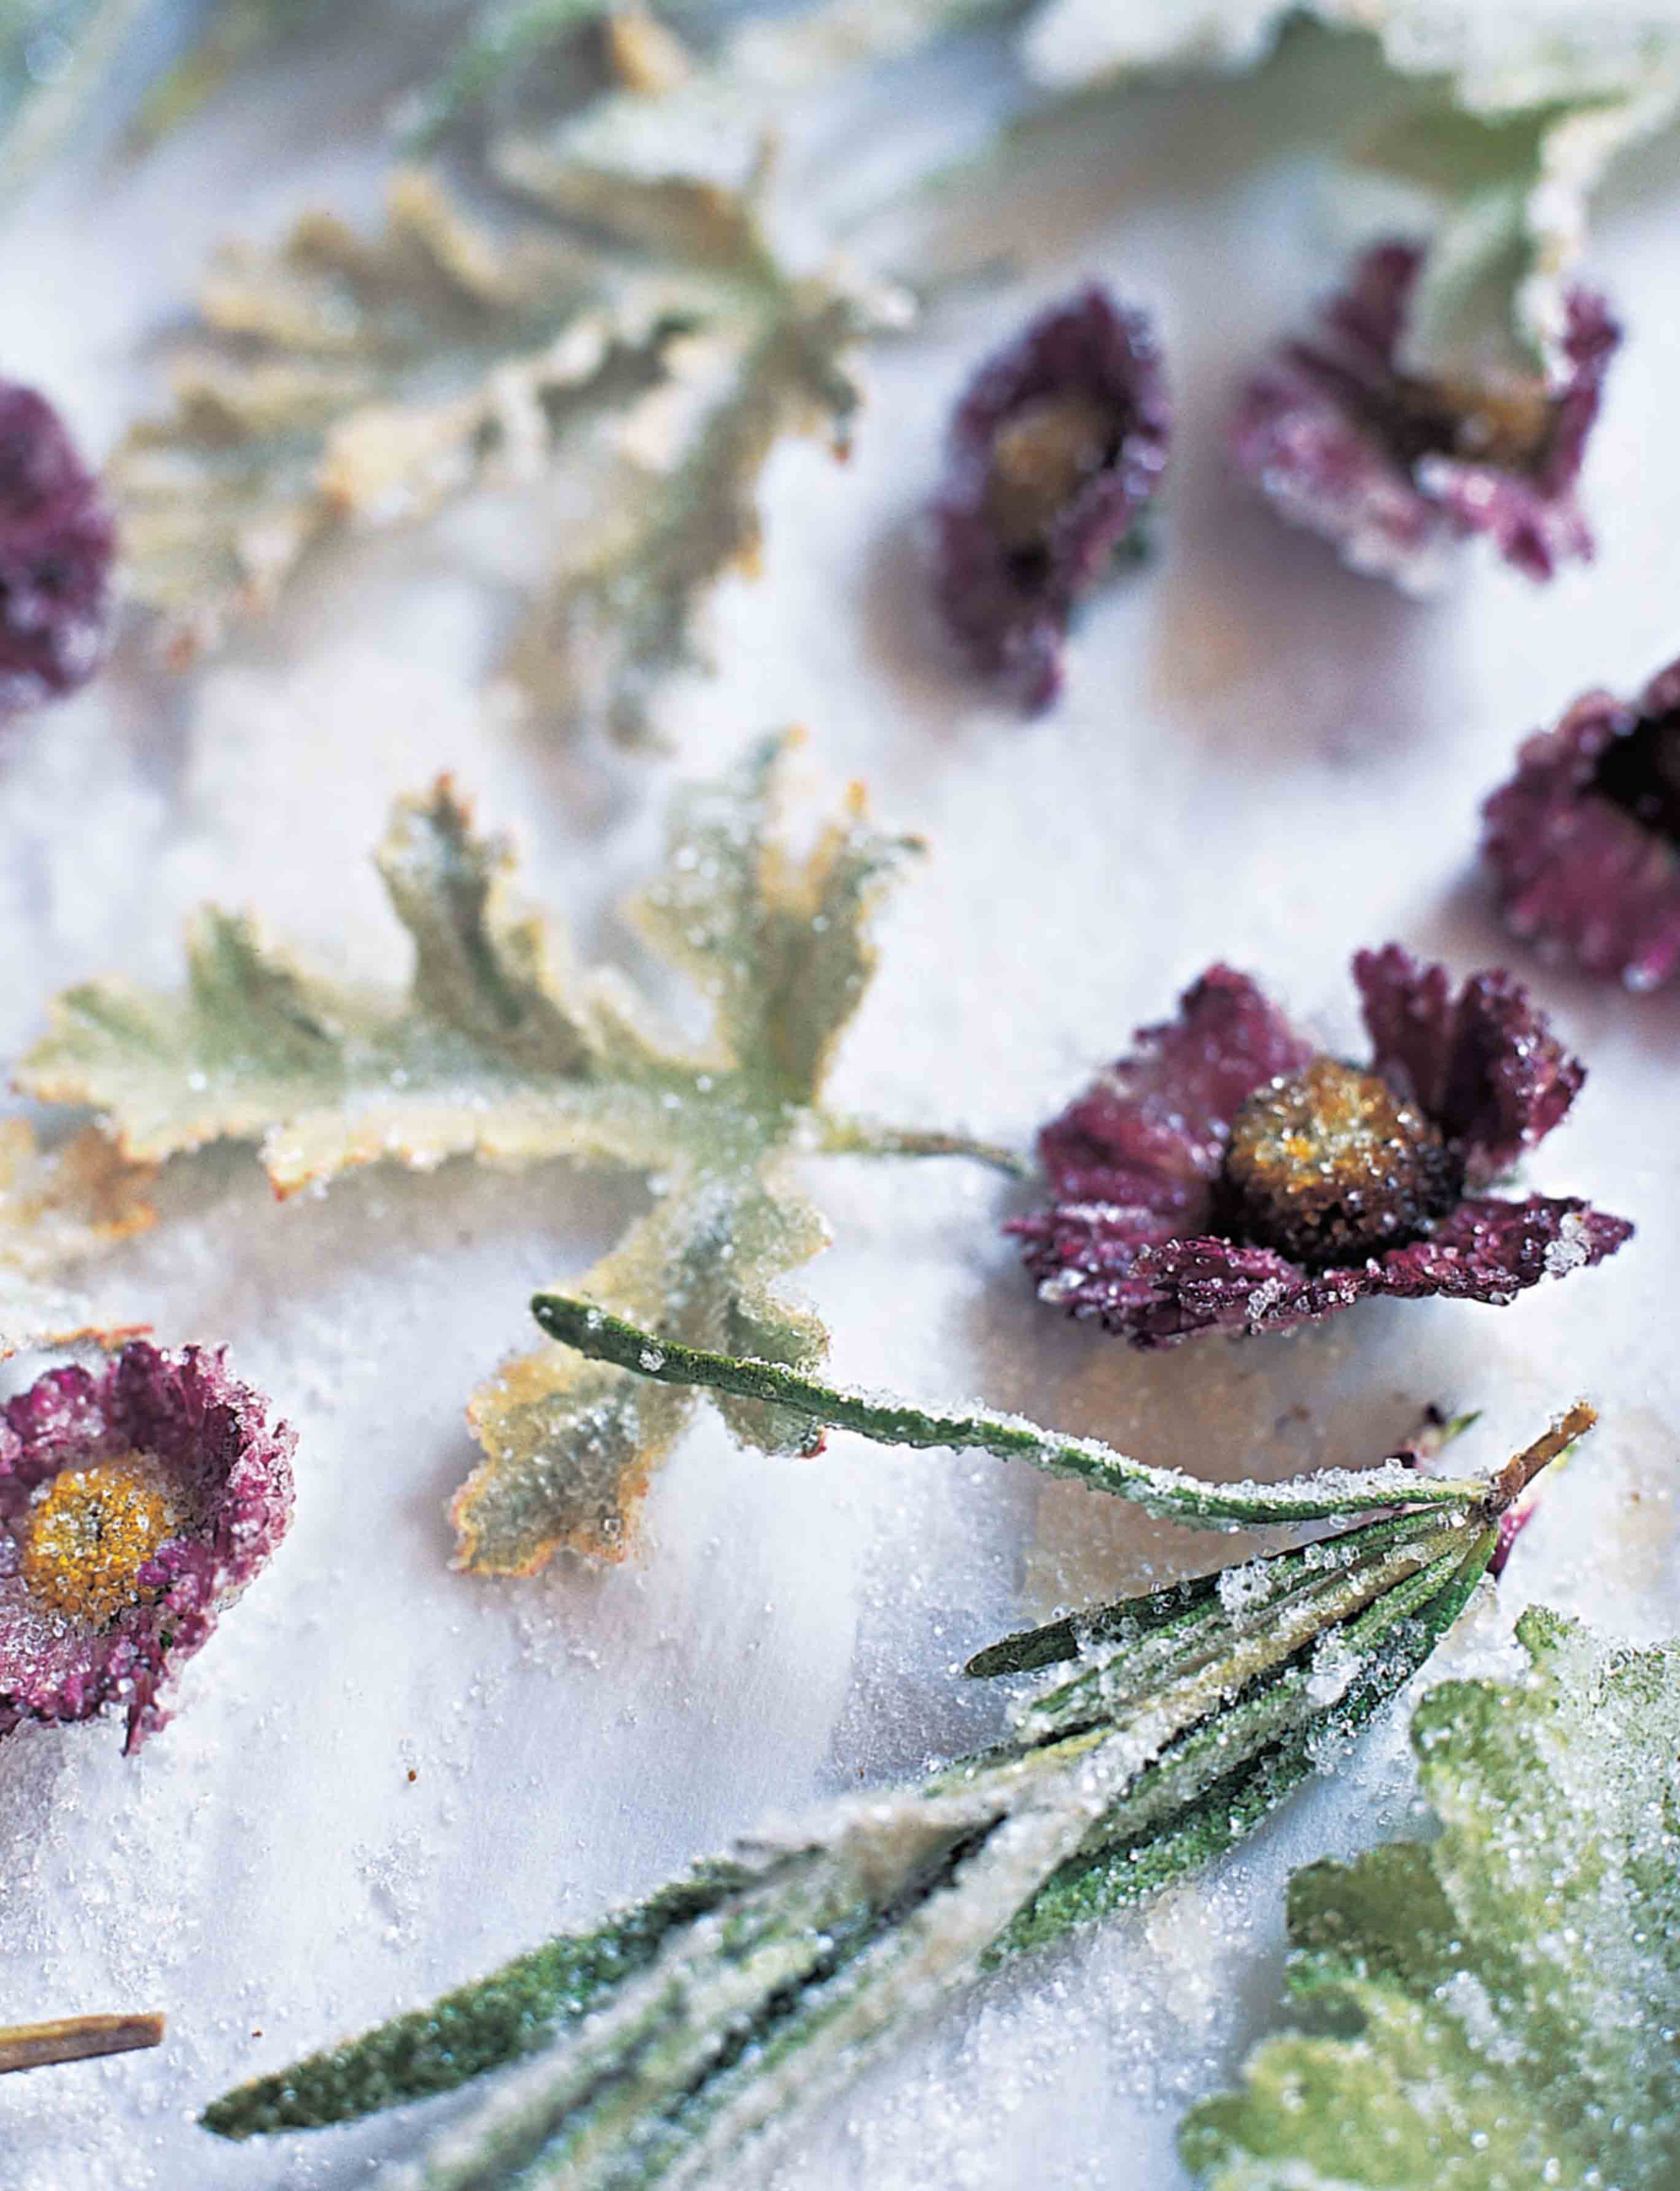 Crystallised flowers and leaves